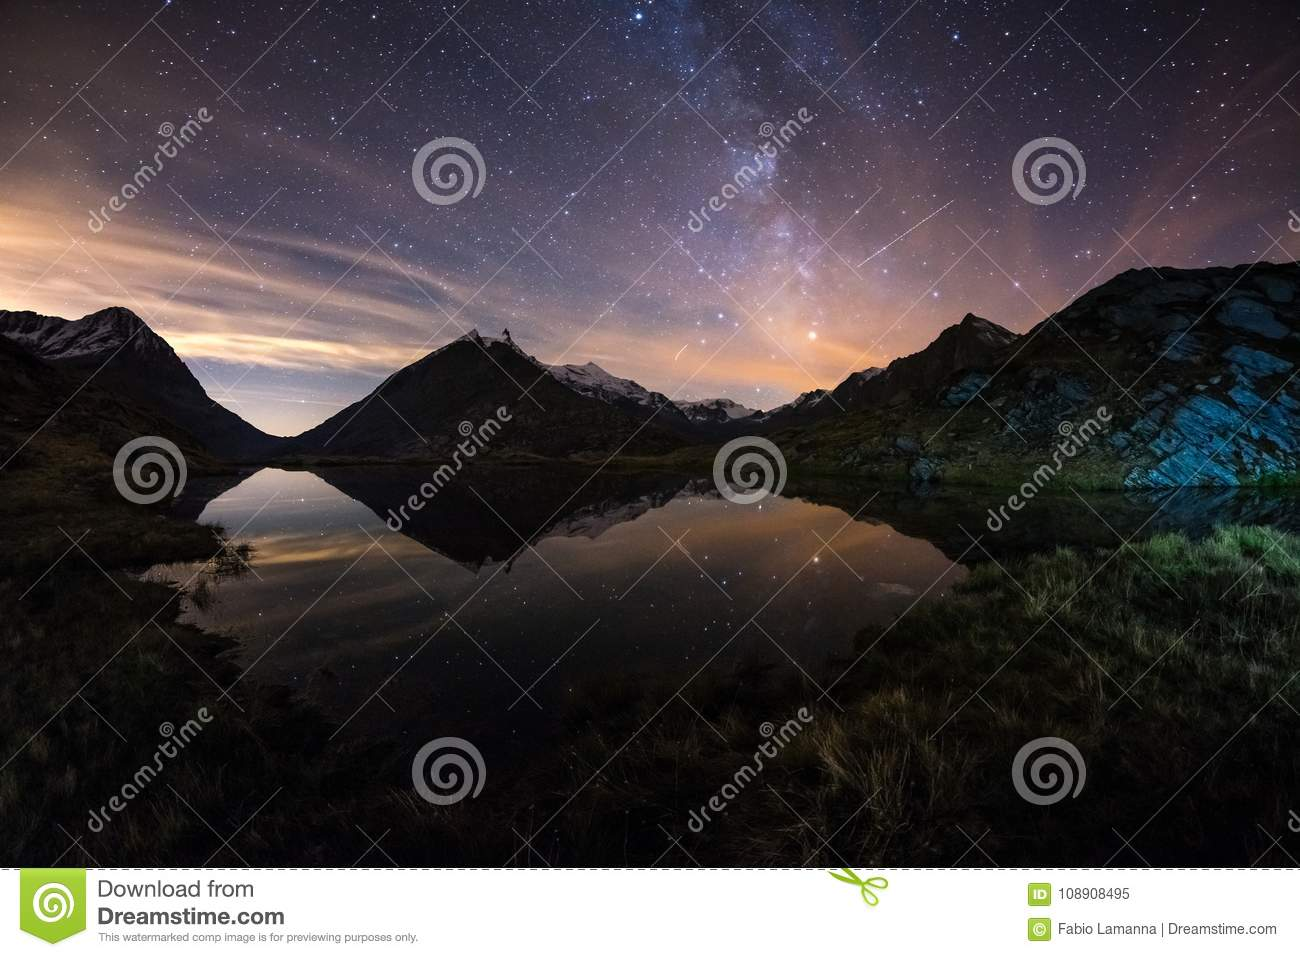 Milky Way starry sky reflected on lake at high altitude on the Alps. Fisheye scenic distortion and 180 degree view.